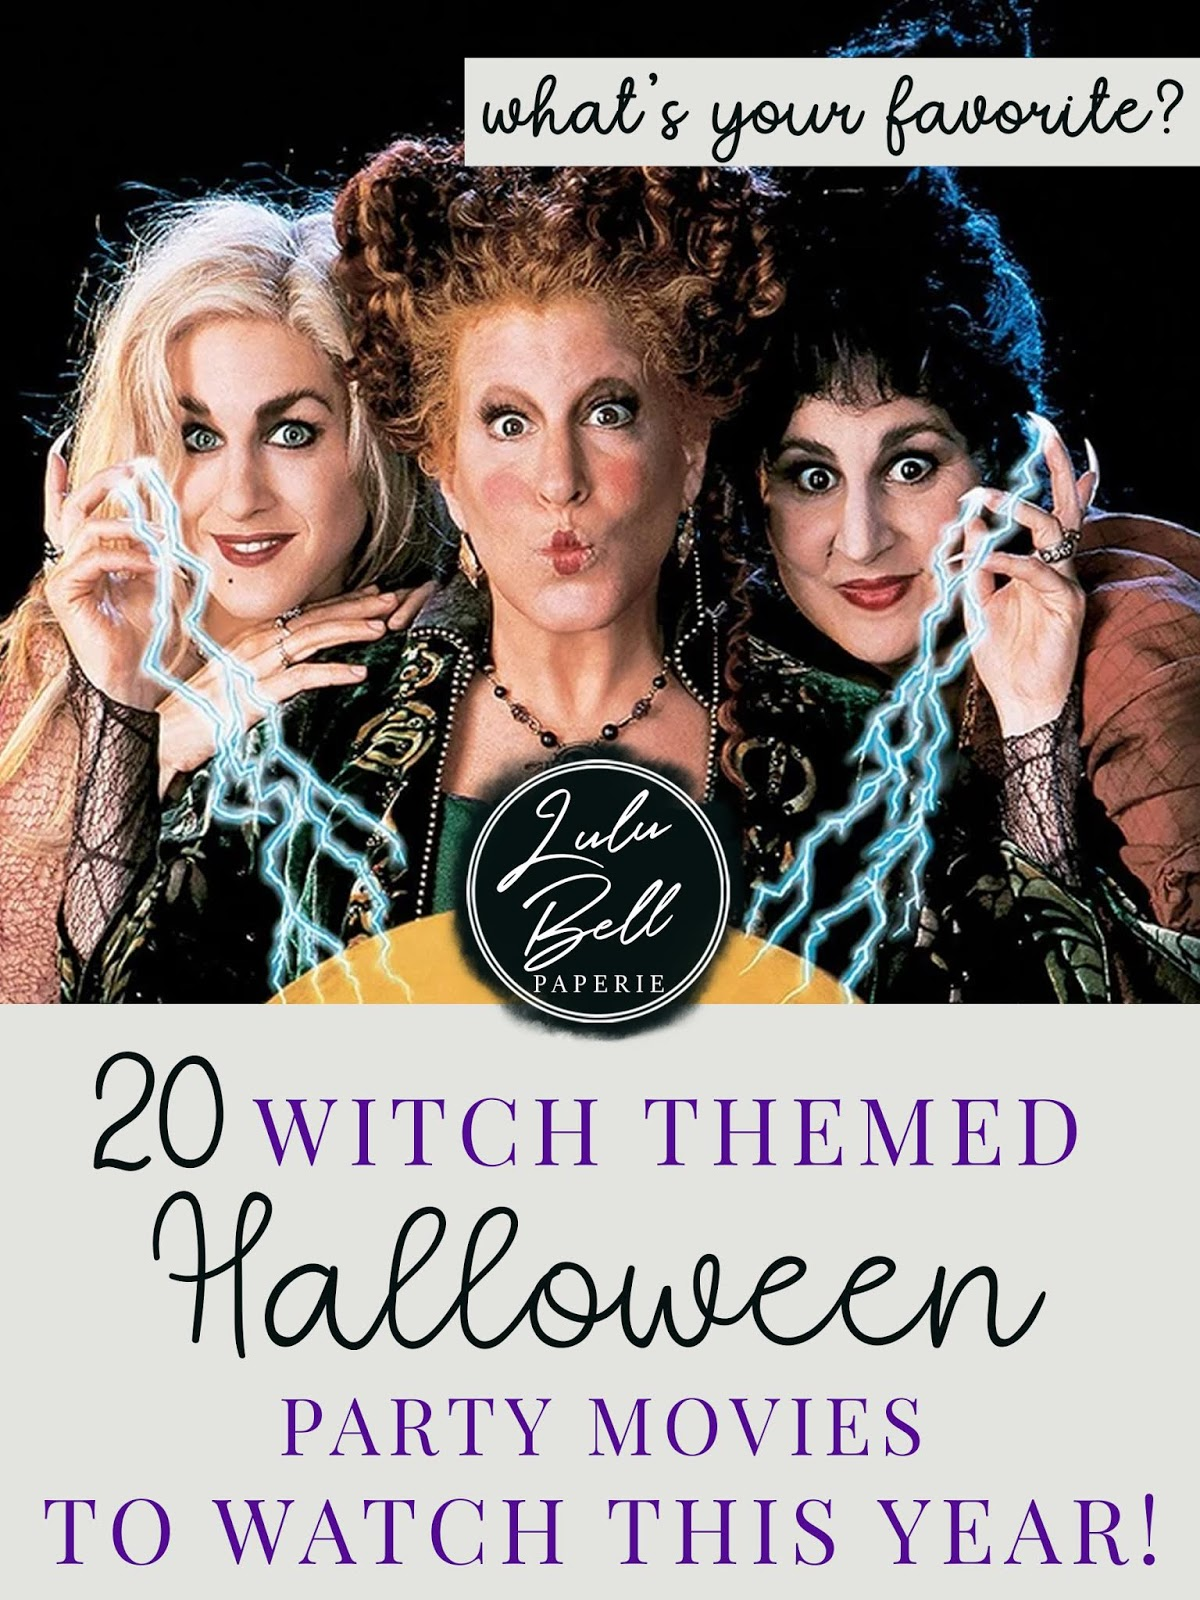 Top 20 Witch-Themed Halloween Party Movies to Watch This Year